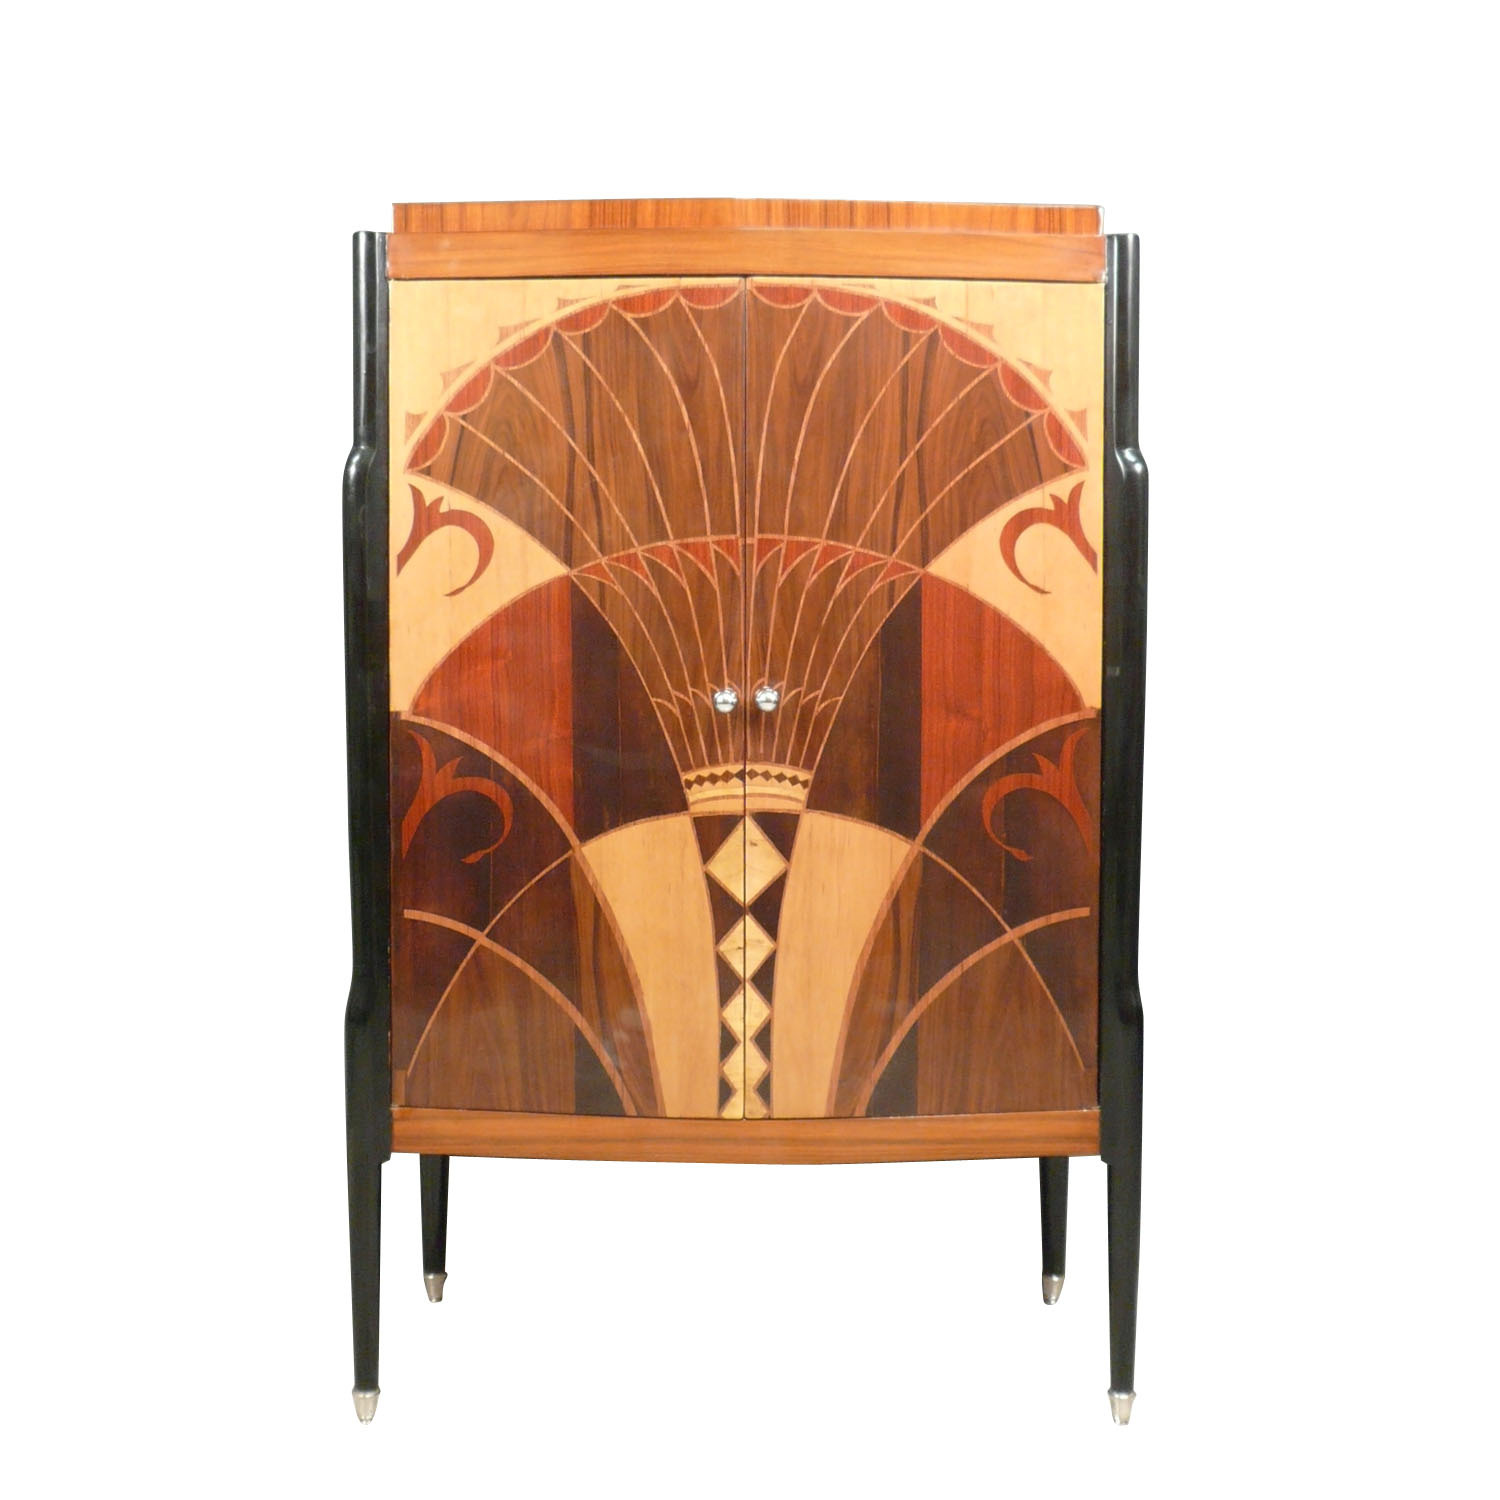 Art deco furniture photo gallery console desk for Deco meuble srl